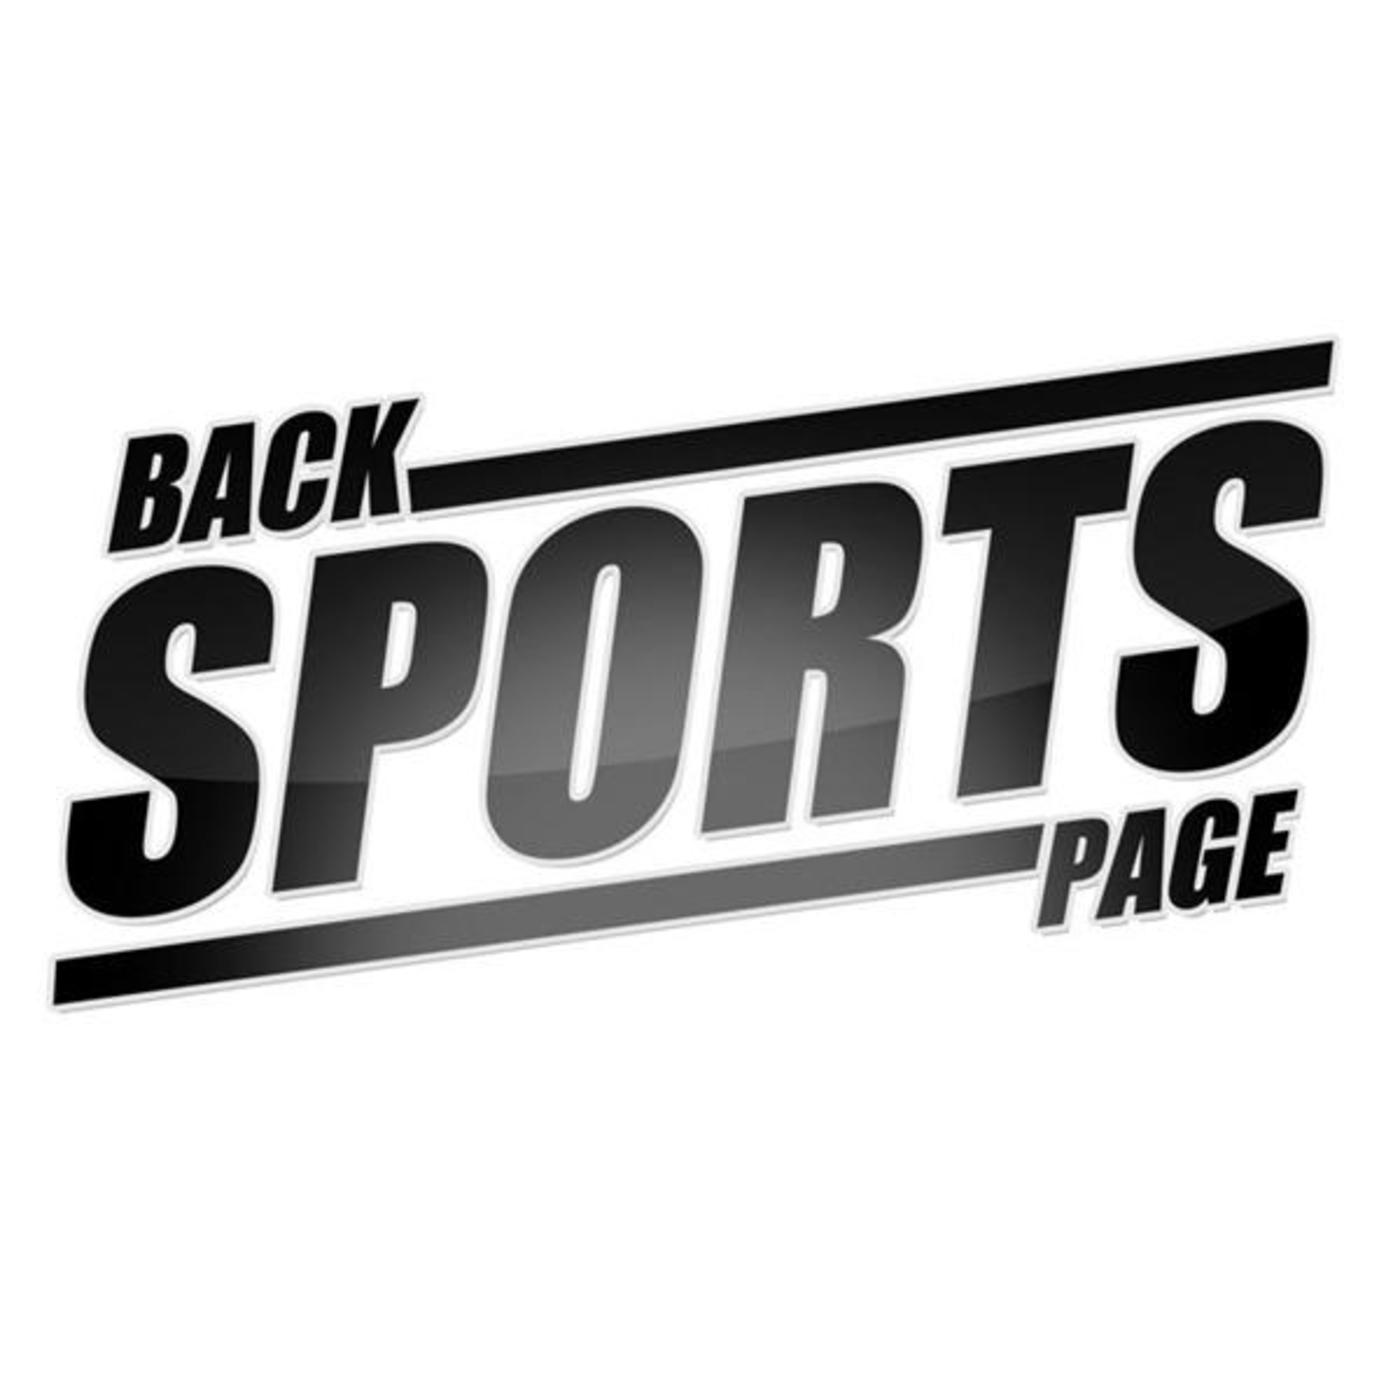 Back Sports Page